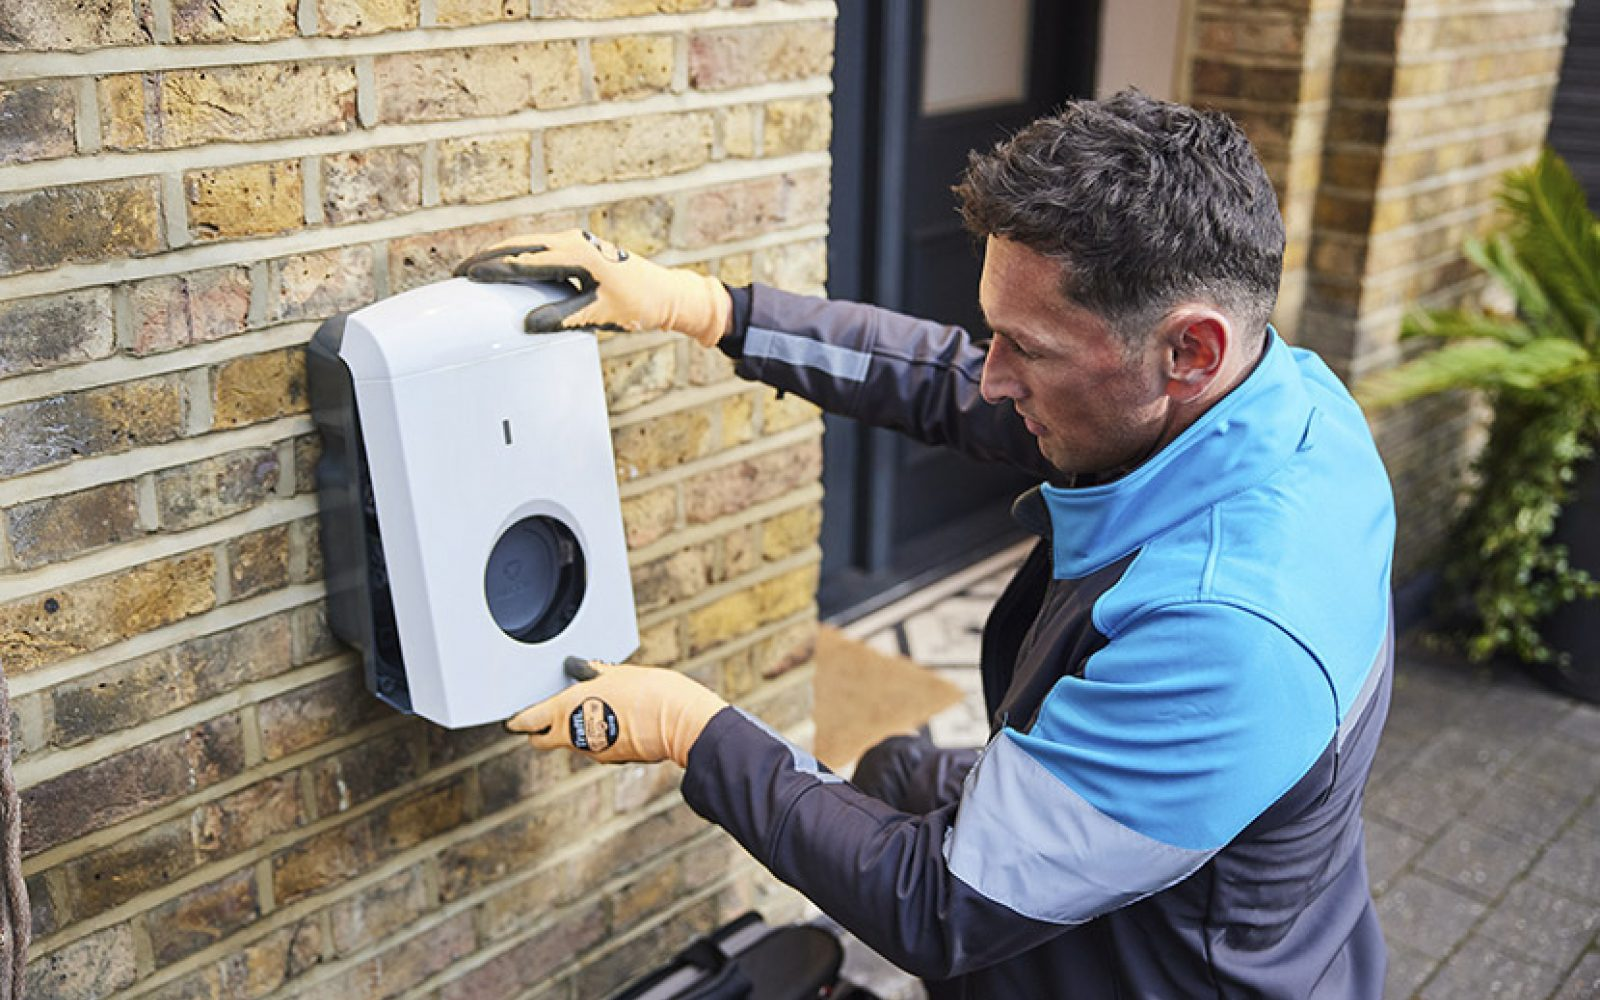 British Gas engineers will install Alfen EV chargers and provide ongoing services for EV drivers. Image: British Gas.